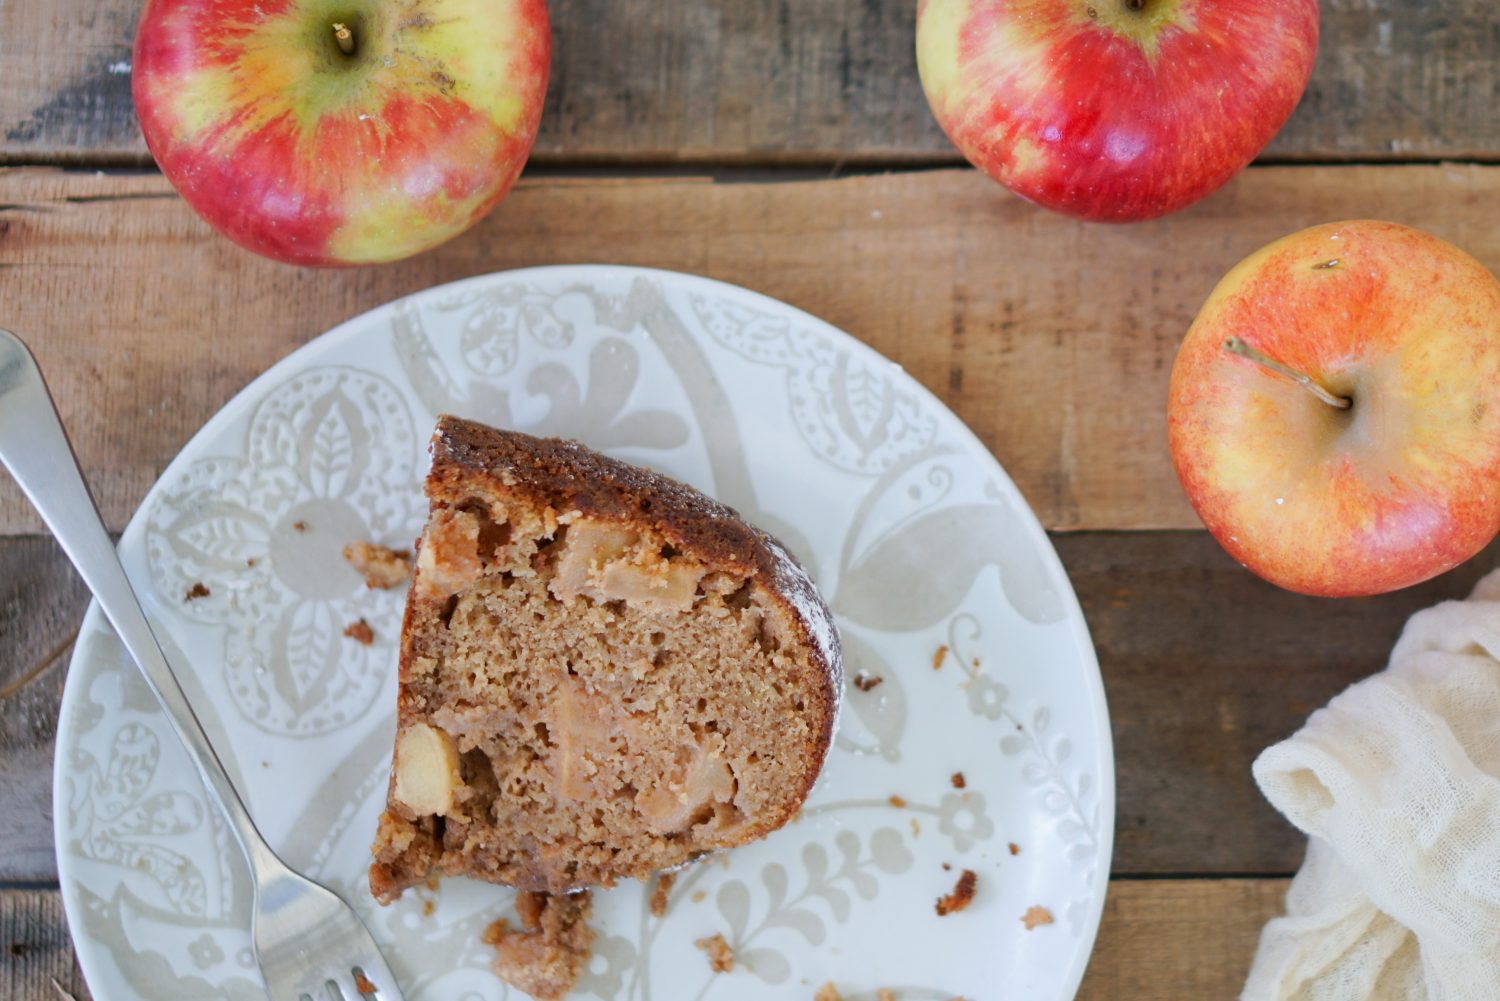 Top down of apple cake with apples in background